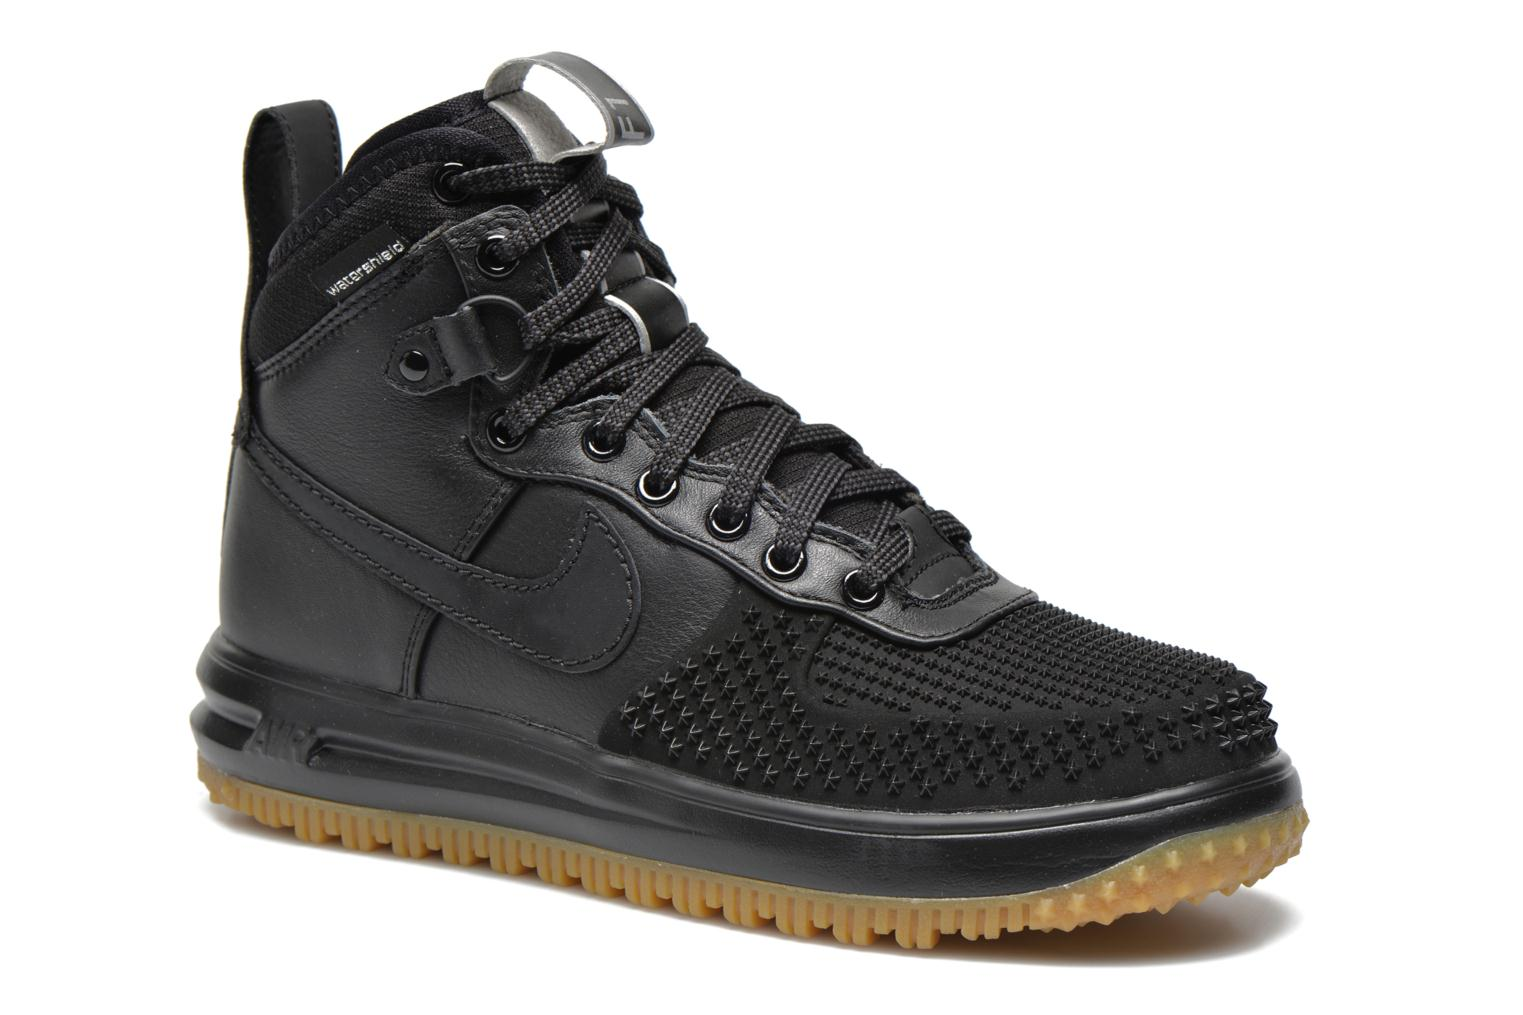 http   www.ruvergomme.com sitea.aspx p id adidas-air-force-1 http ... 9769921546b